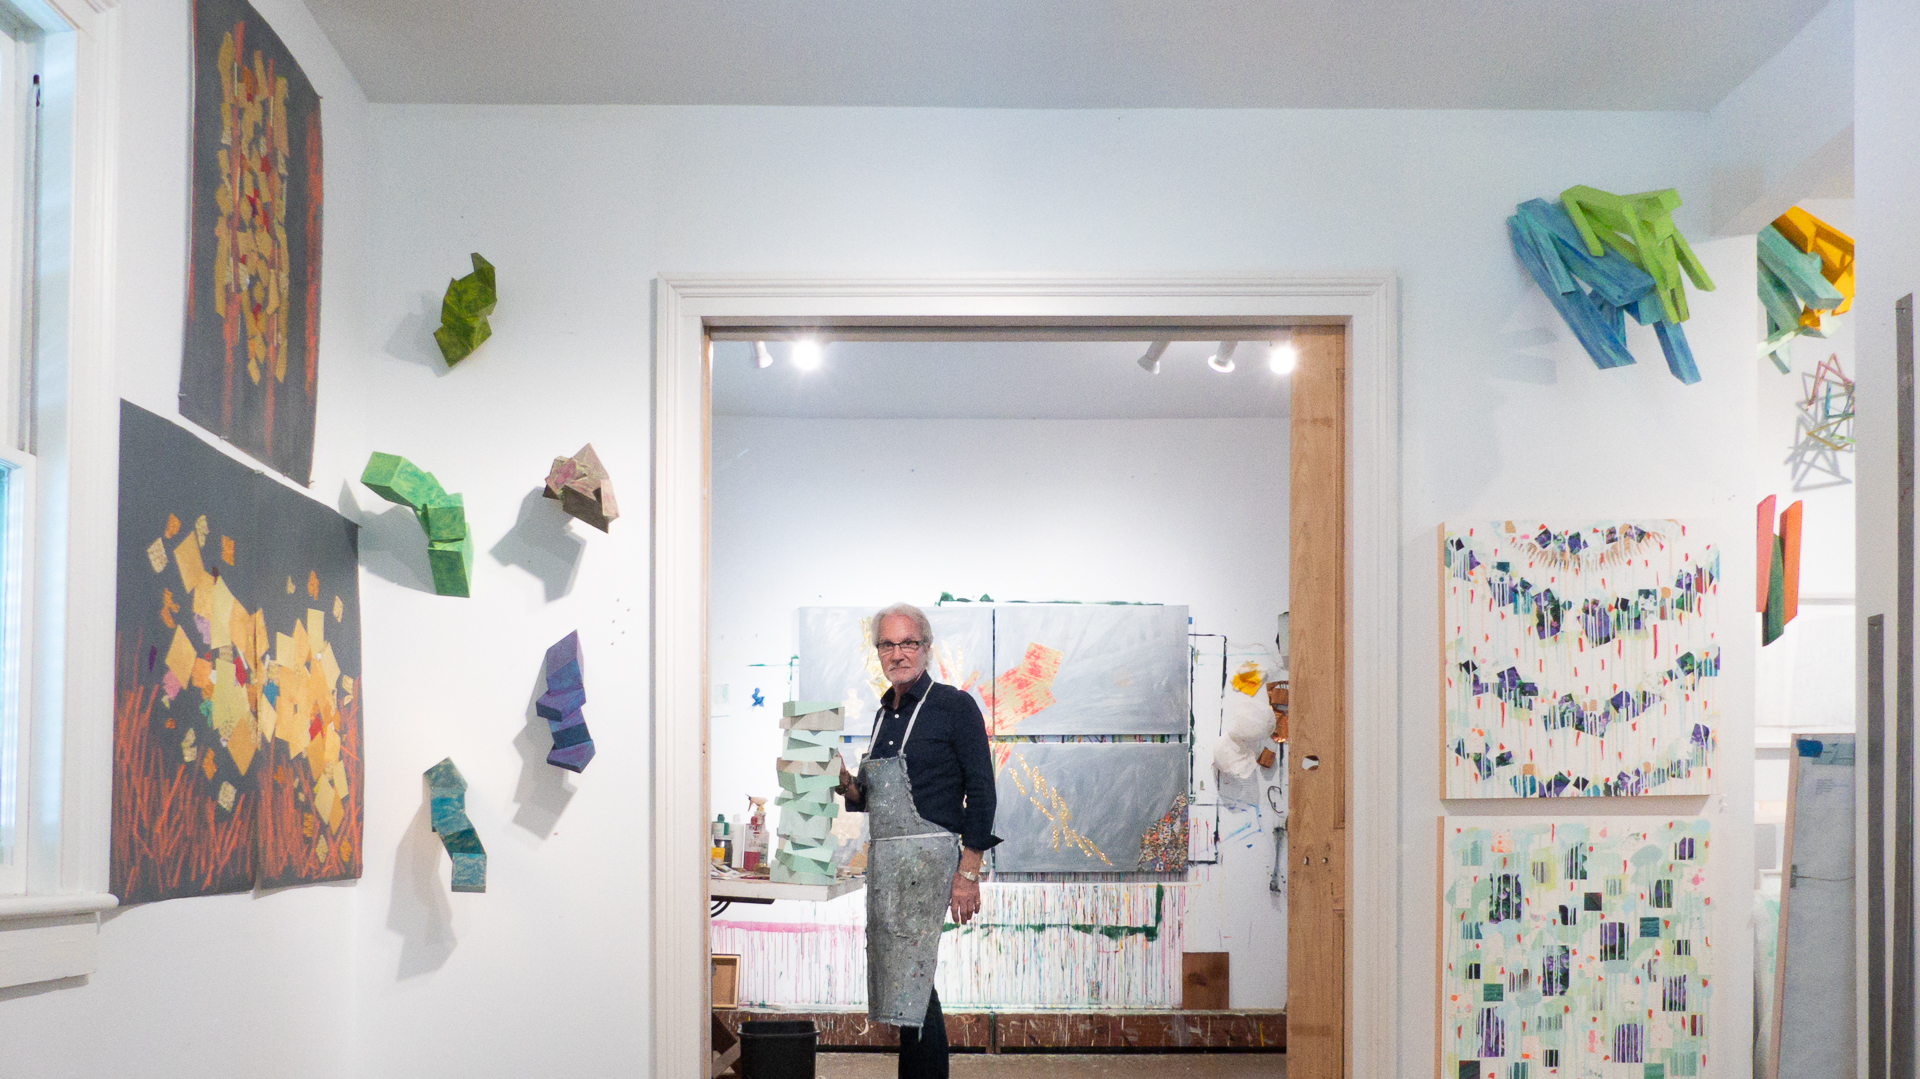 Wayne standing in his studio